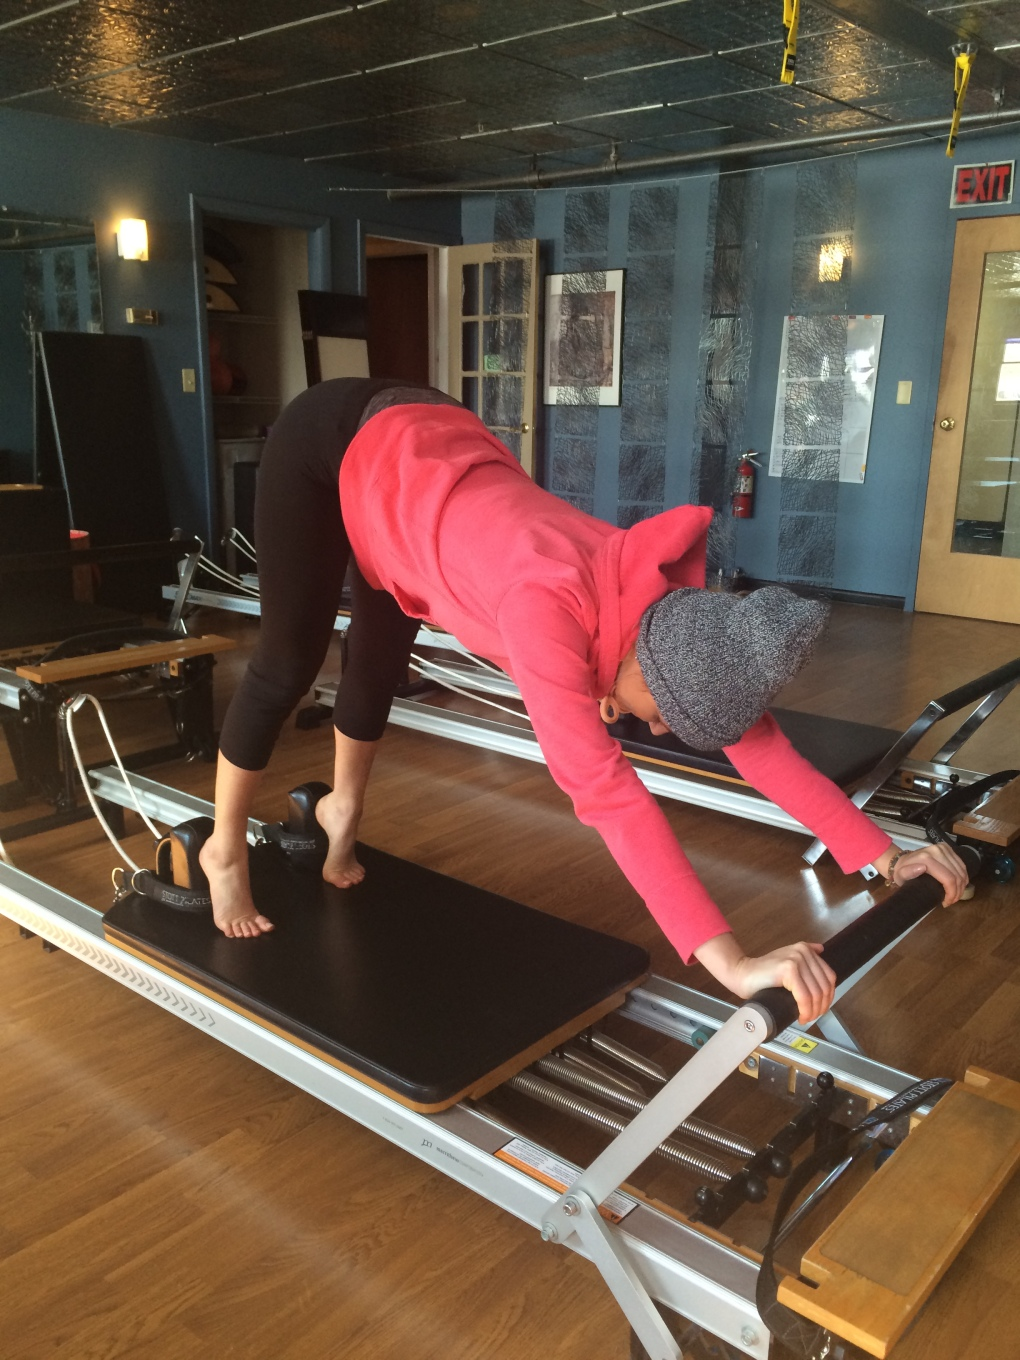 Pilates reformer fitness workout